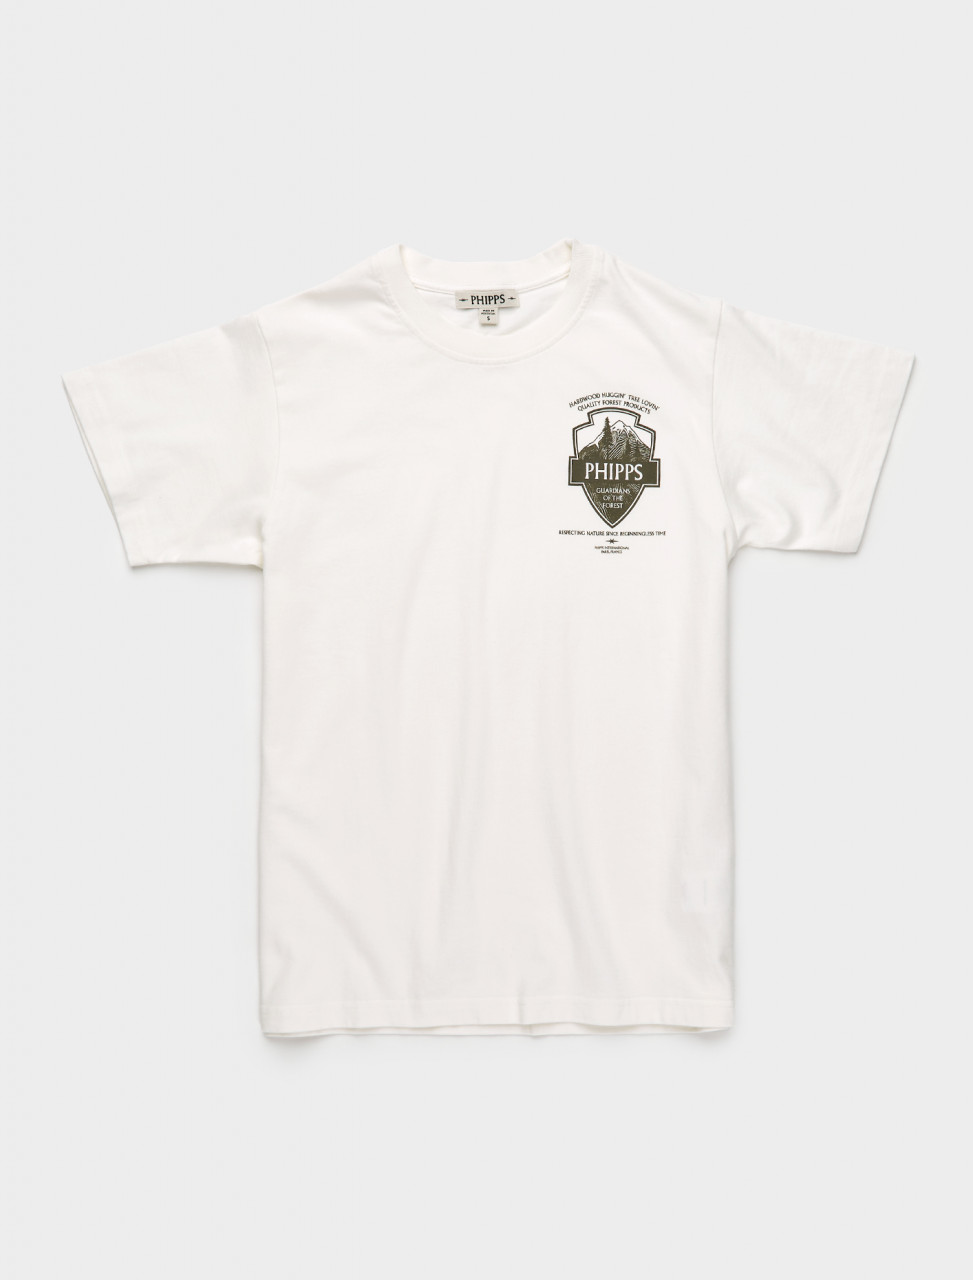 261-PHFW20-N01-A PHIPPS PARK BADGE LOGO T SHIRT WHITE